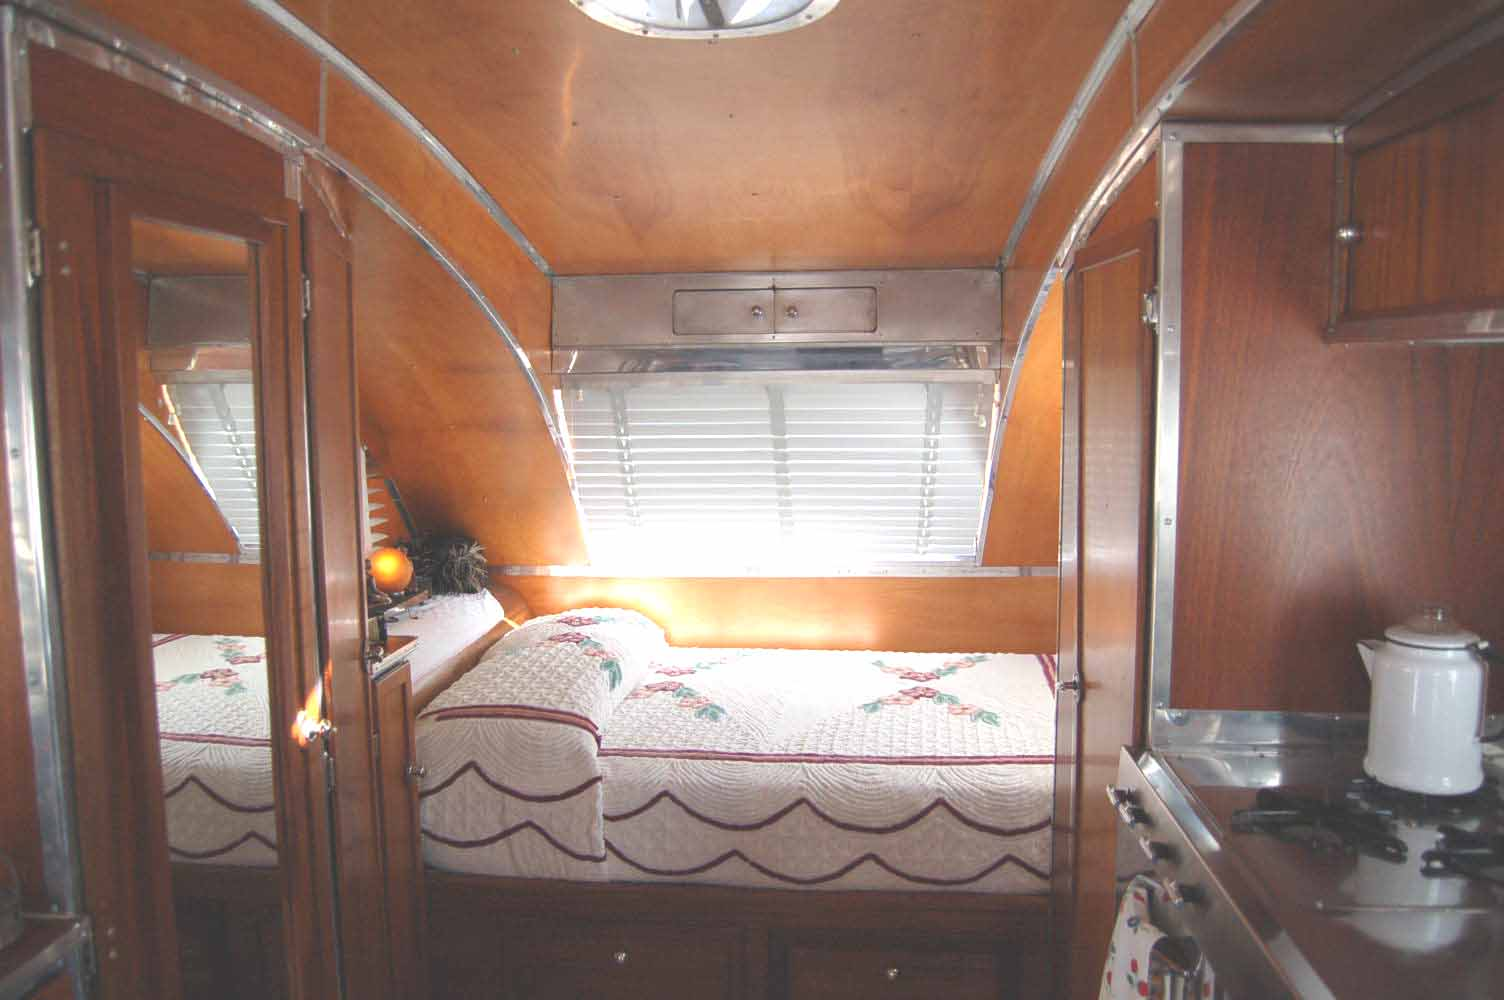 Vintage Trailer Interiors From the 1940's, from OldTrailer com